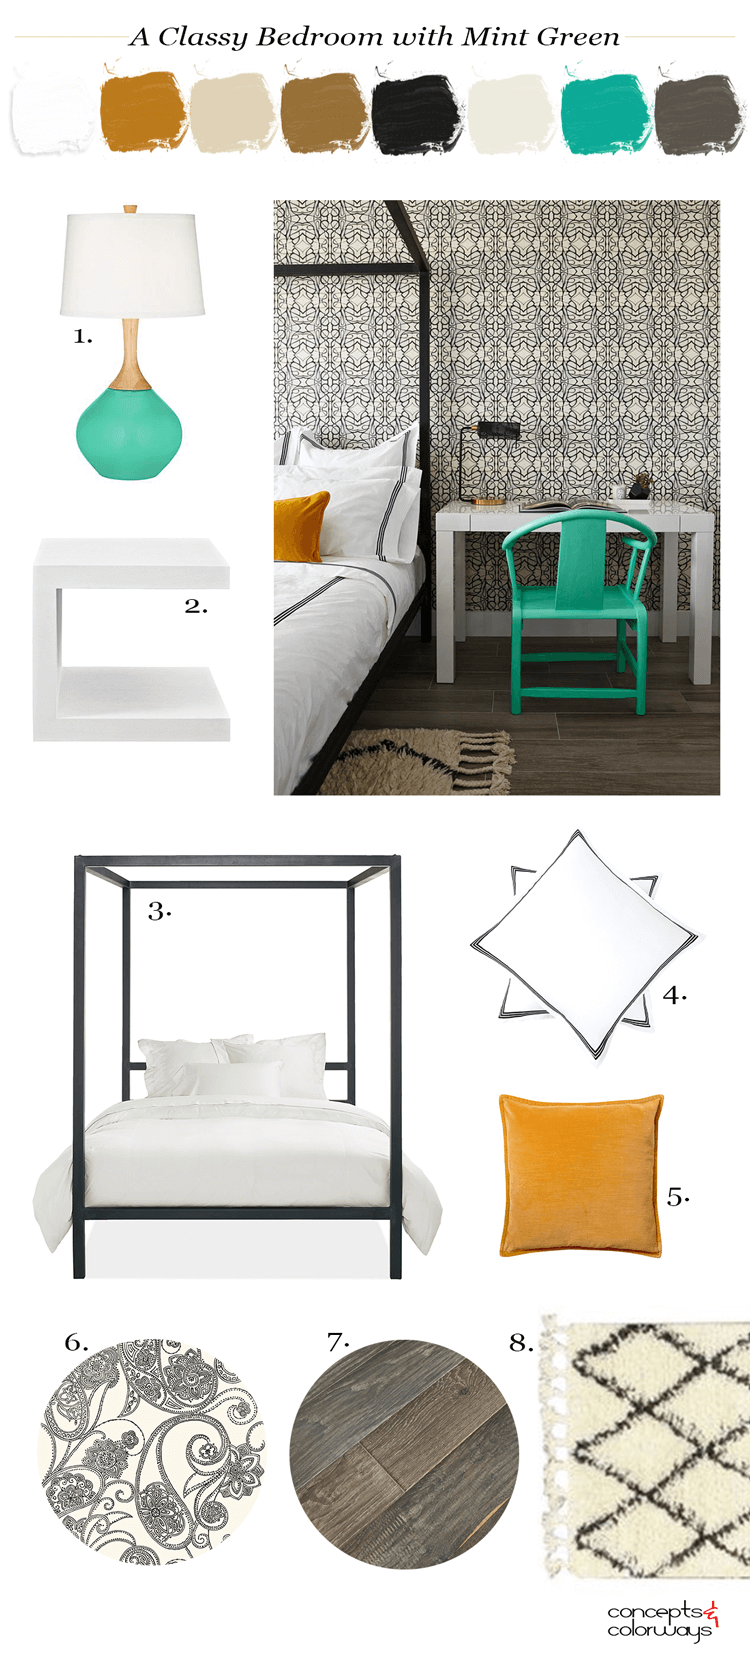 a classy bedroom with mint green accents, mint green, burnt orange, dark wood floors, black and cream wallpaper, black poster bed, mint green decor, ivory shag rug, white modern nightstand, black and white bedding